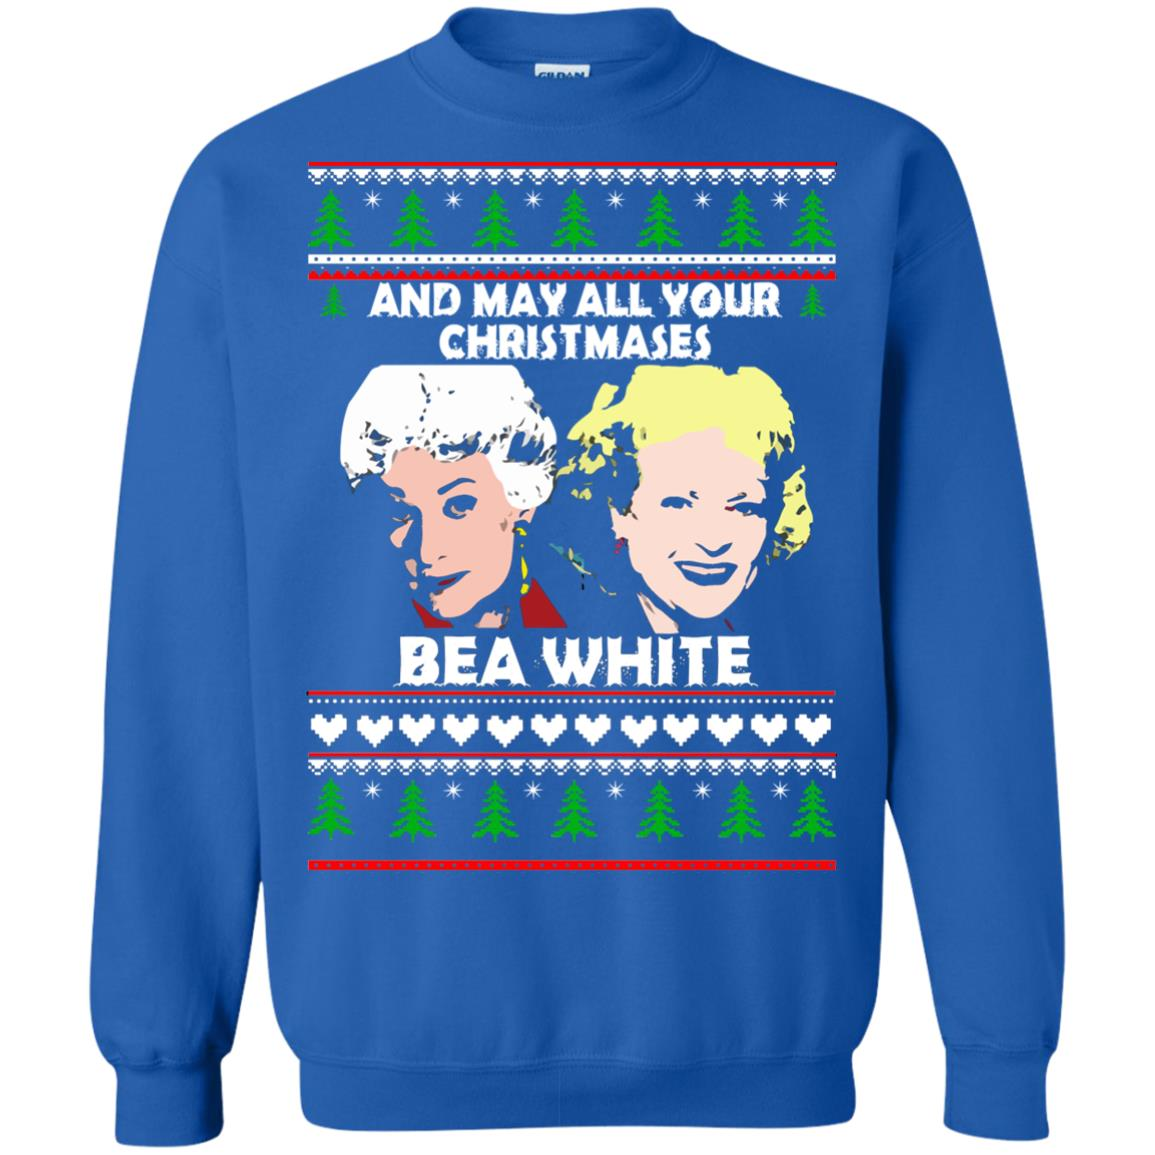 image 2946 - Golden Girls: May all your Christmases Bea White Ugly Sweater, Shirt